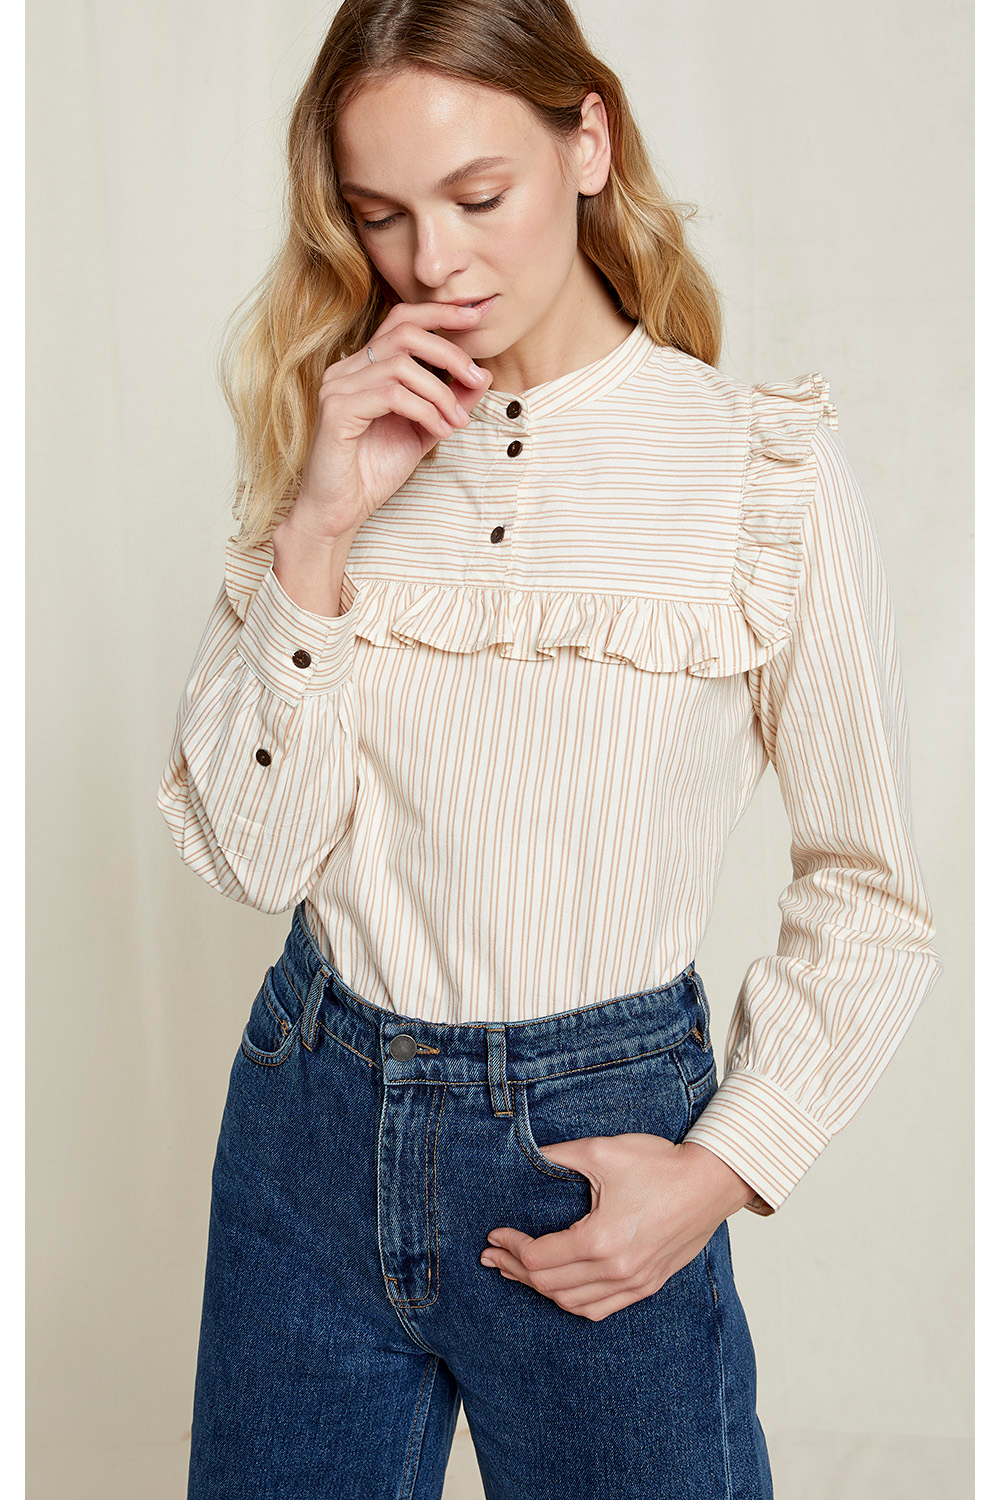 Alix Striped Blouse in Off White 16